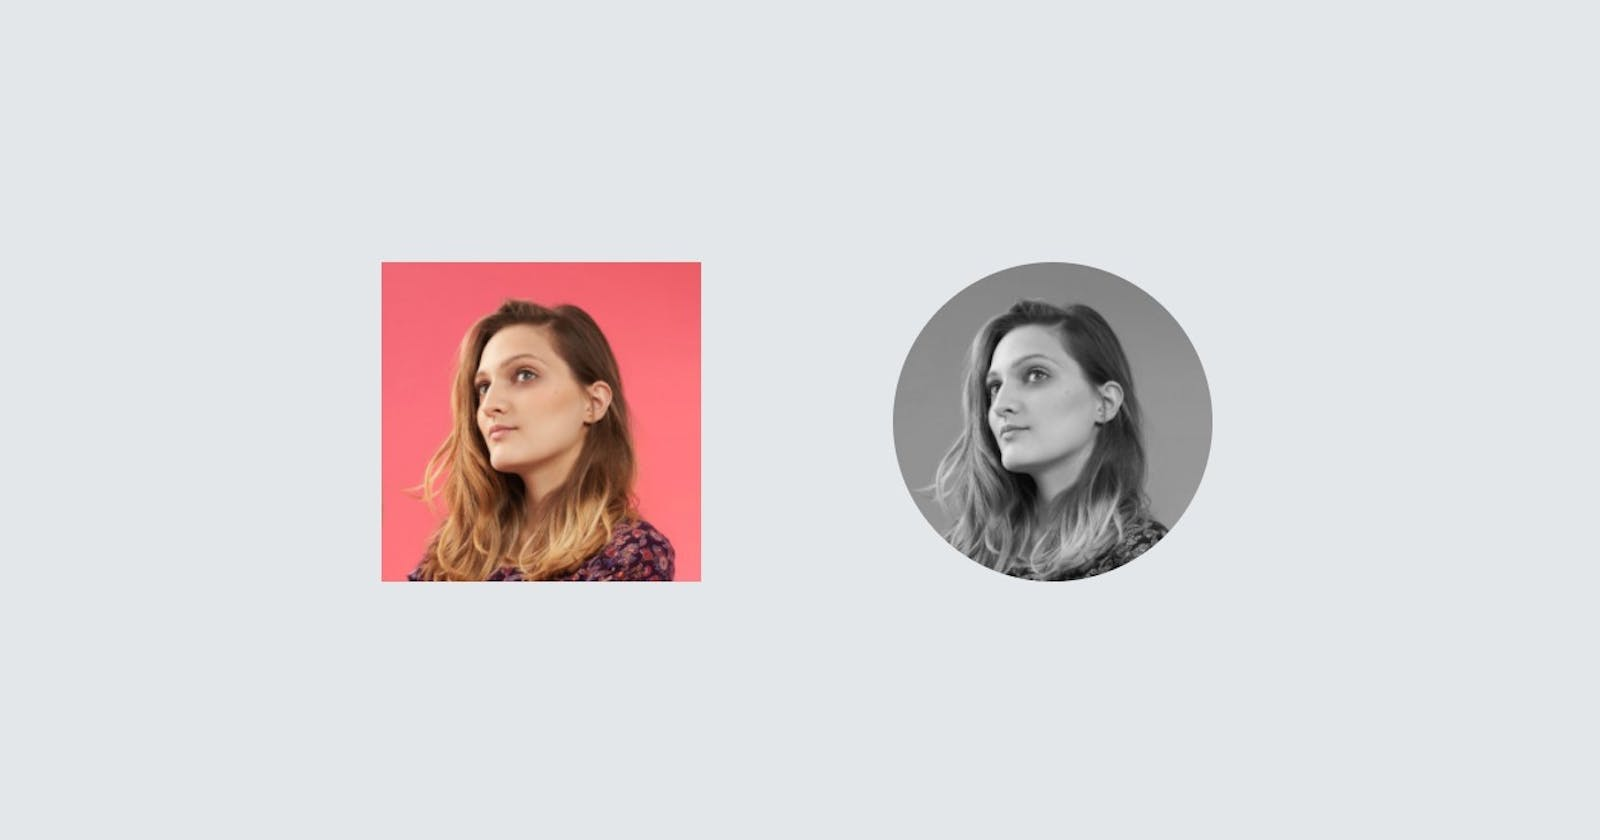 Rounded Black and White Image Effect using CSS